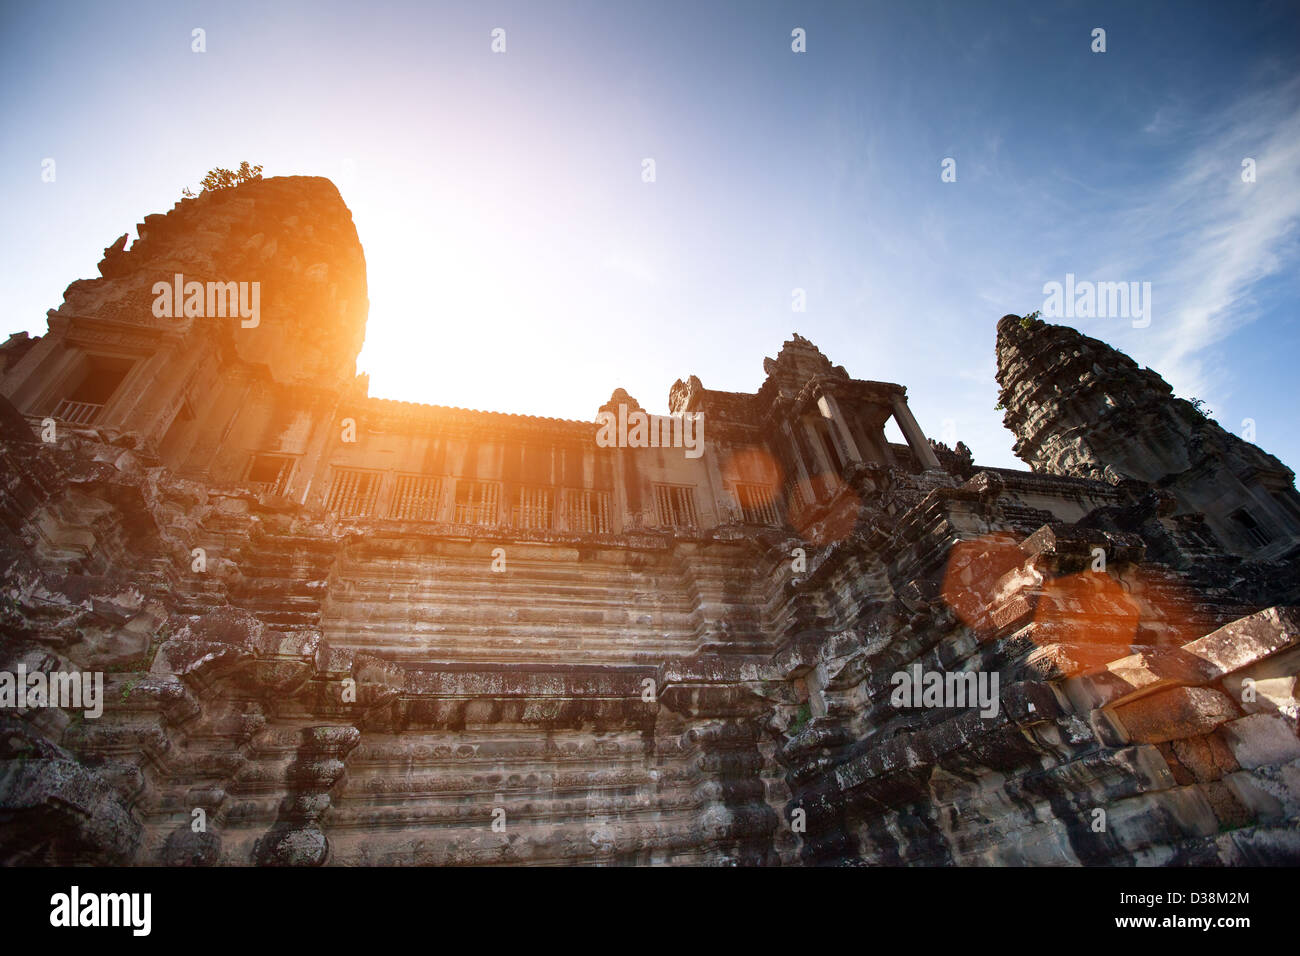 Angkor wat is the largest hindu temple complex it has become a angkor wat is the largest hindu temple complex it has become a symbol of cambodia biocorpaavc Gallery